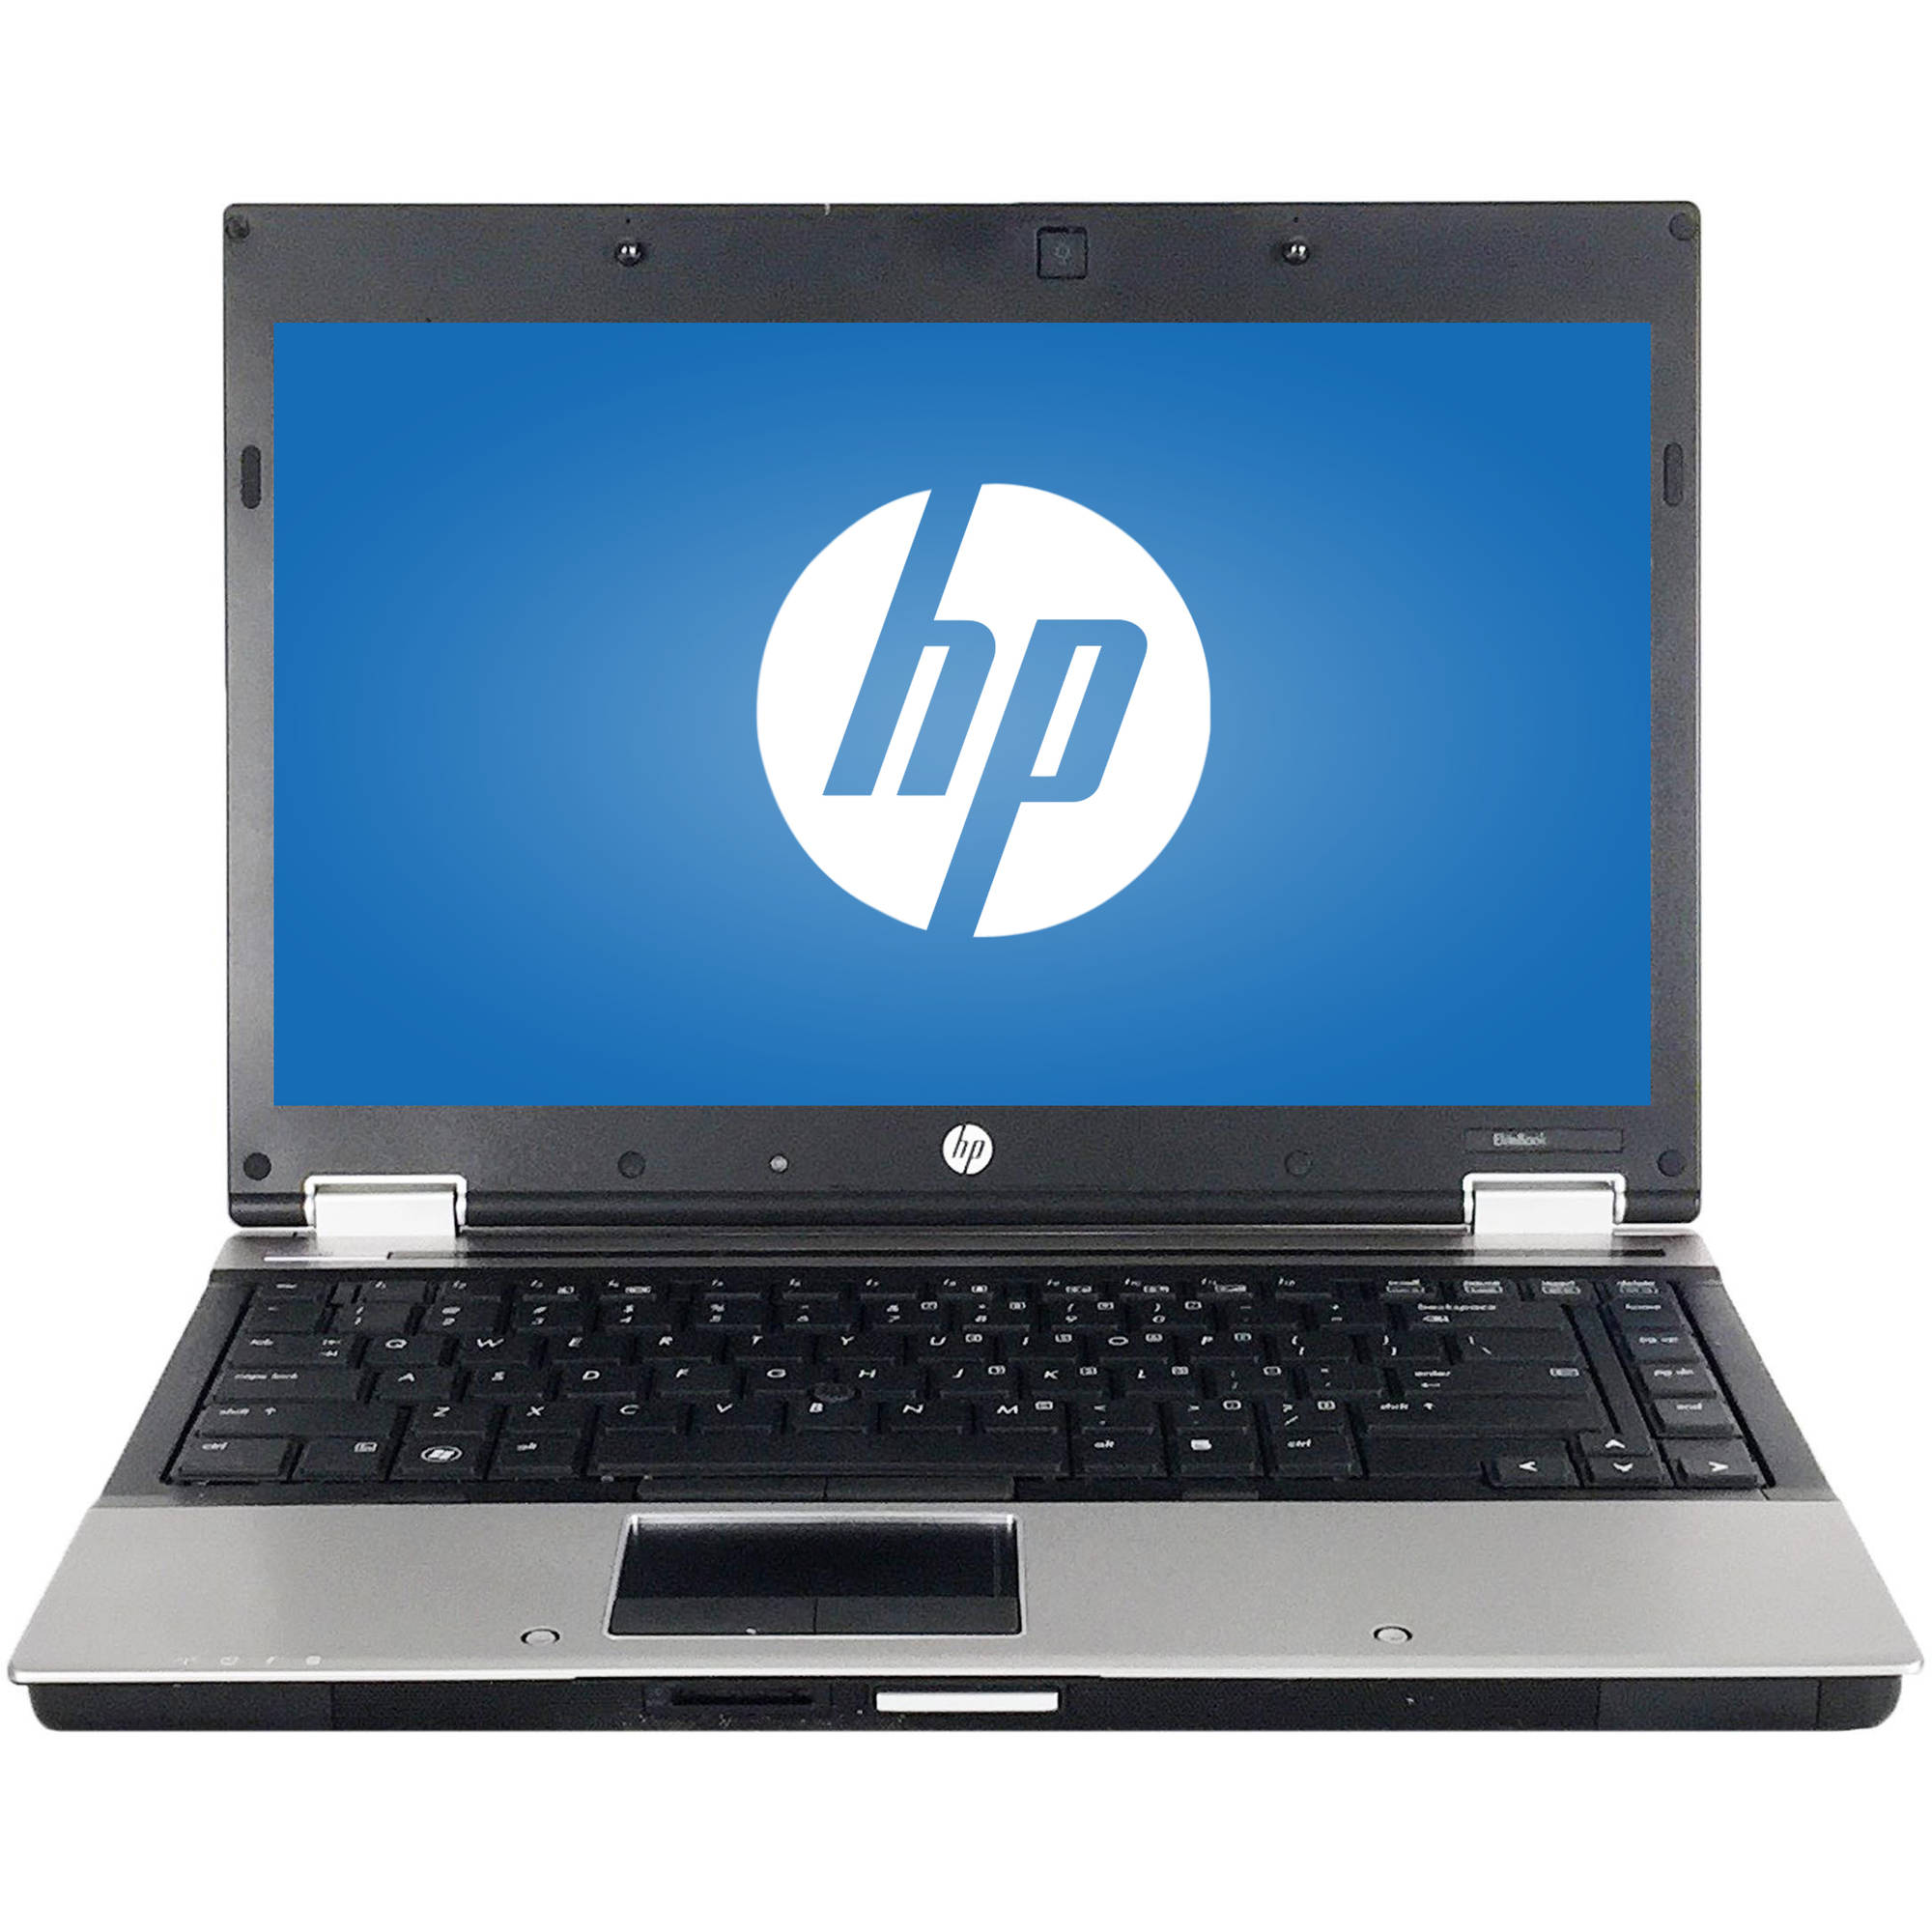 "Refurbished HP EliteBook 8440P 14"" Laptop, Windows 10 Pro, Intel Core i5-520M Processor, 4GB RAM, 250GB Hard Drive"